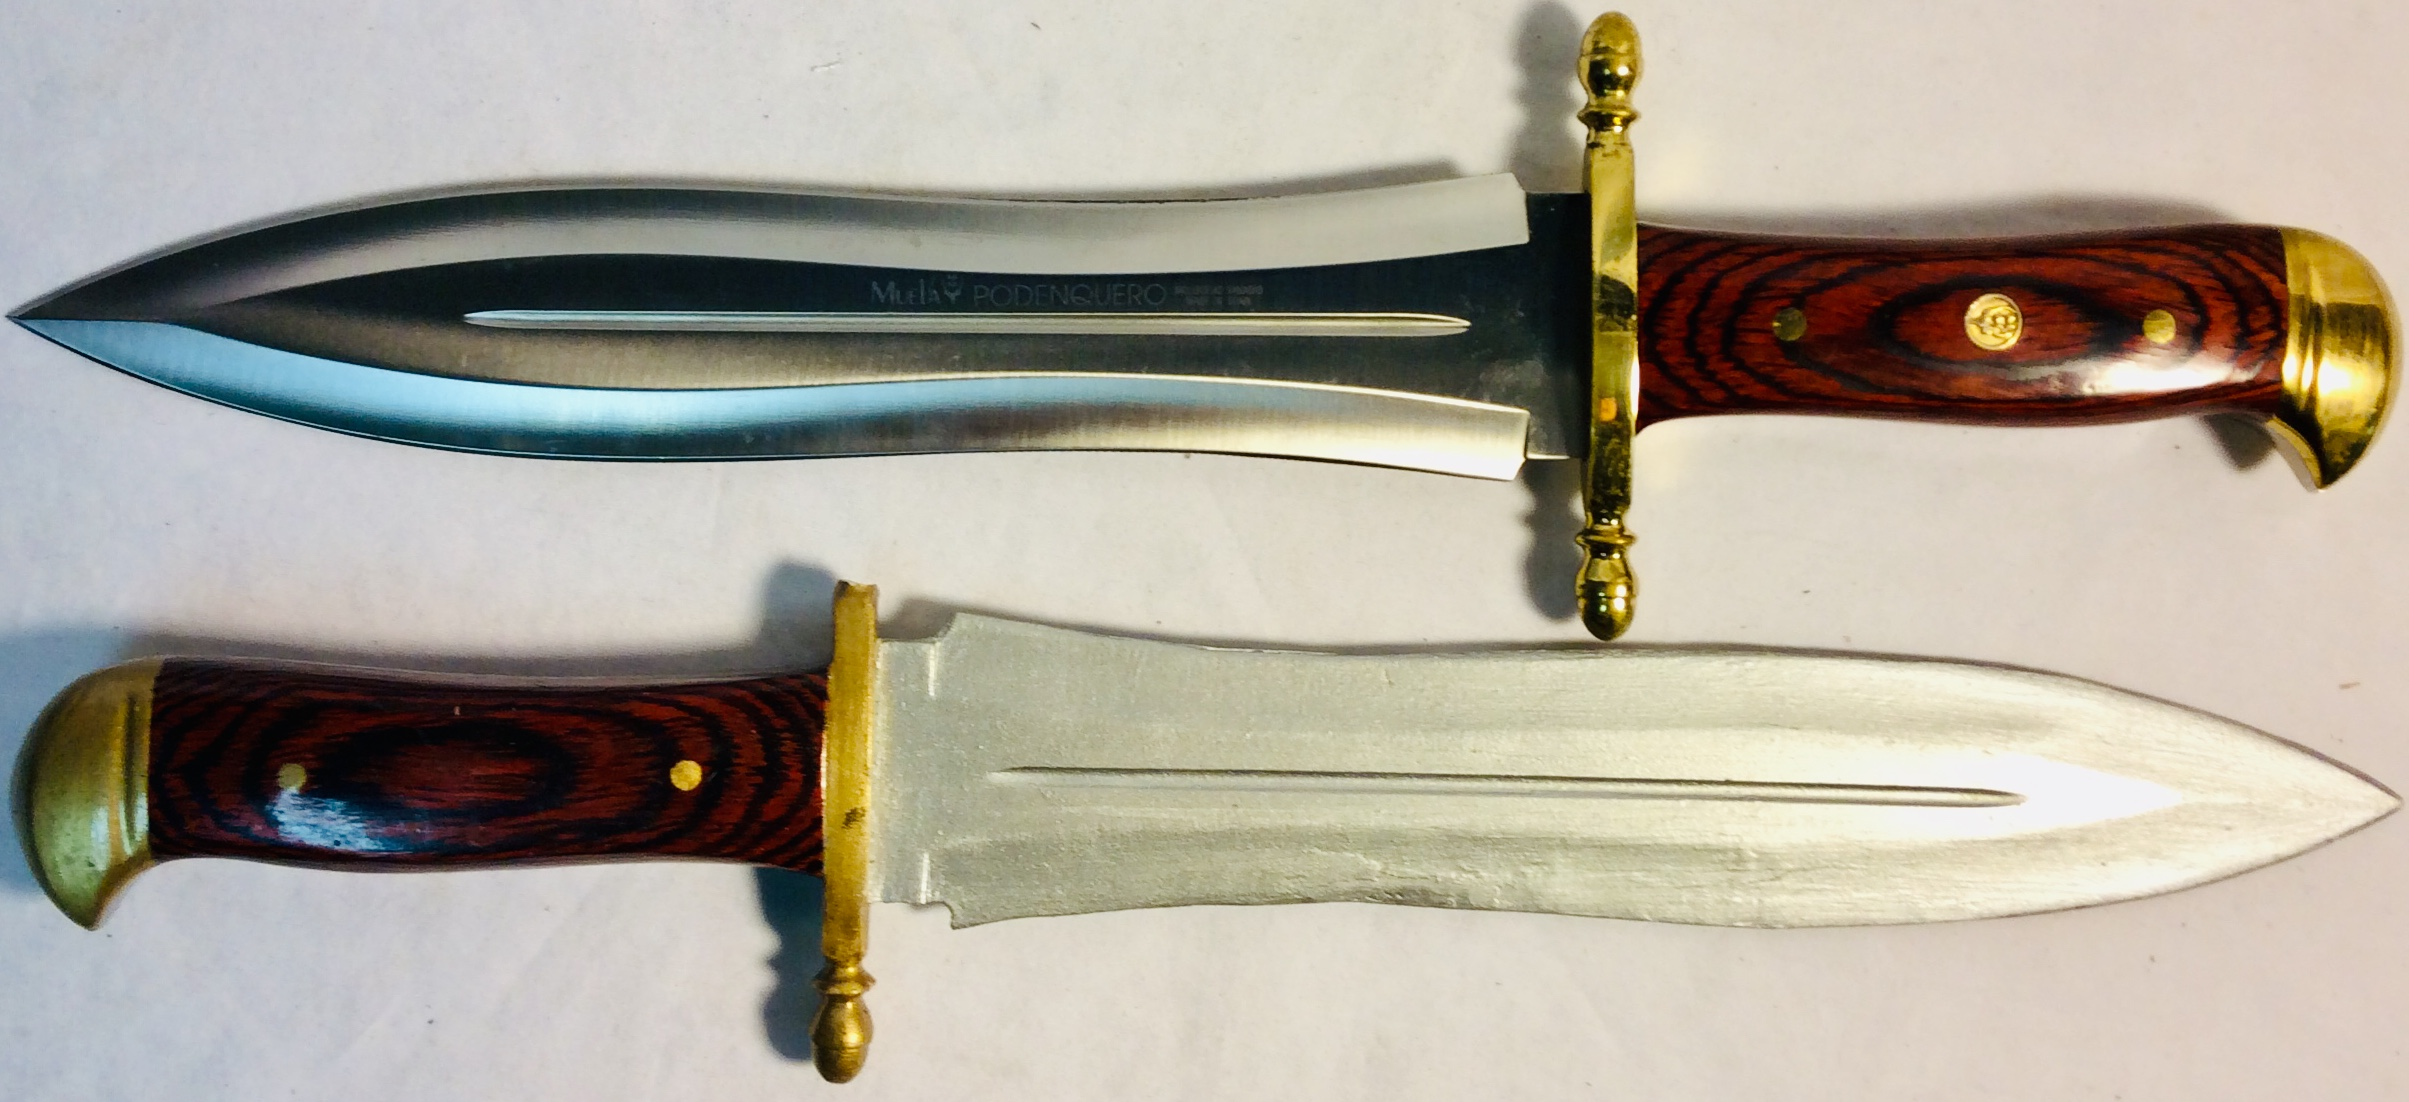 Medium size sword with wooden handle and golden details x2 real x2 rubber